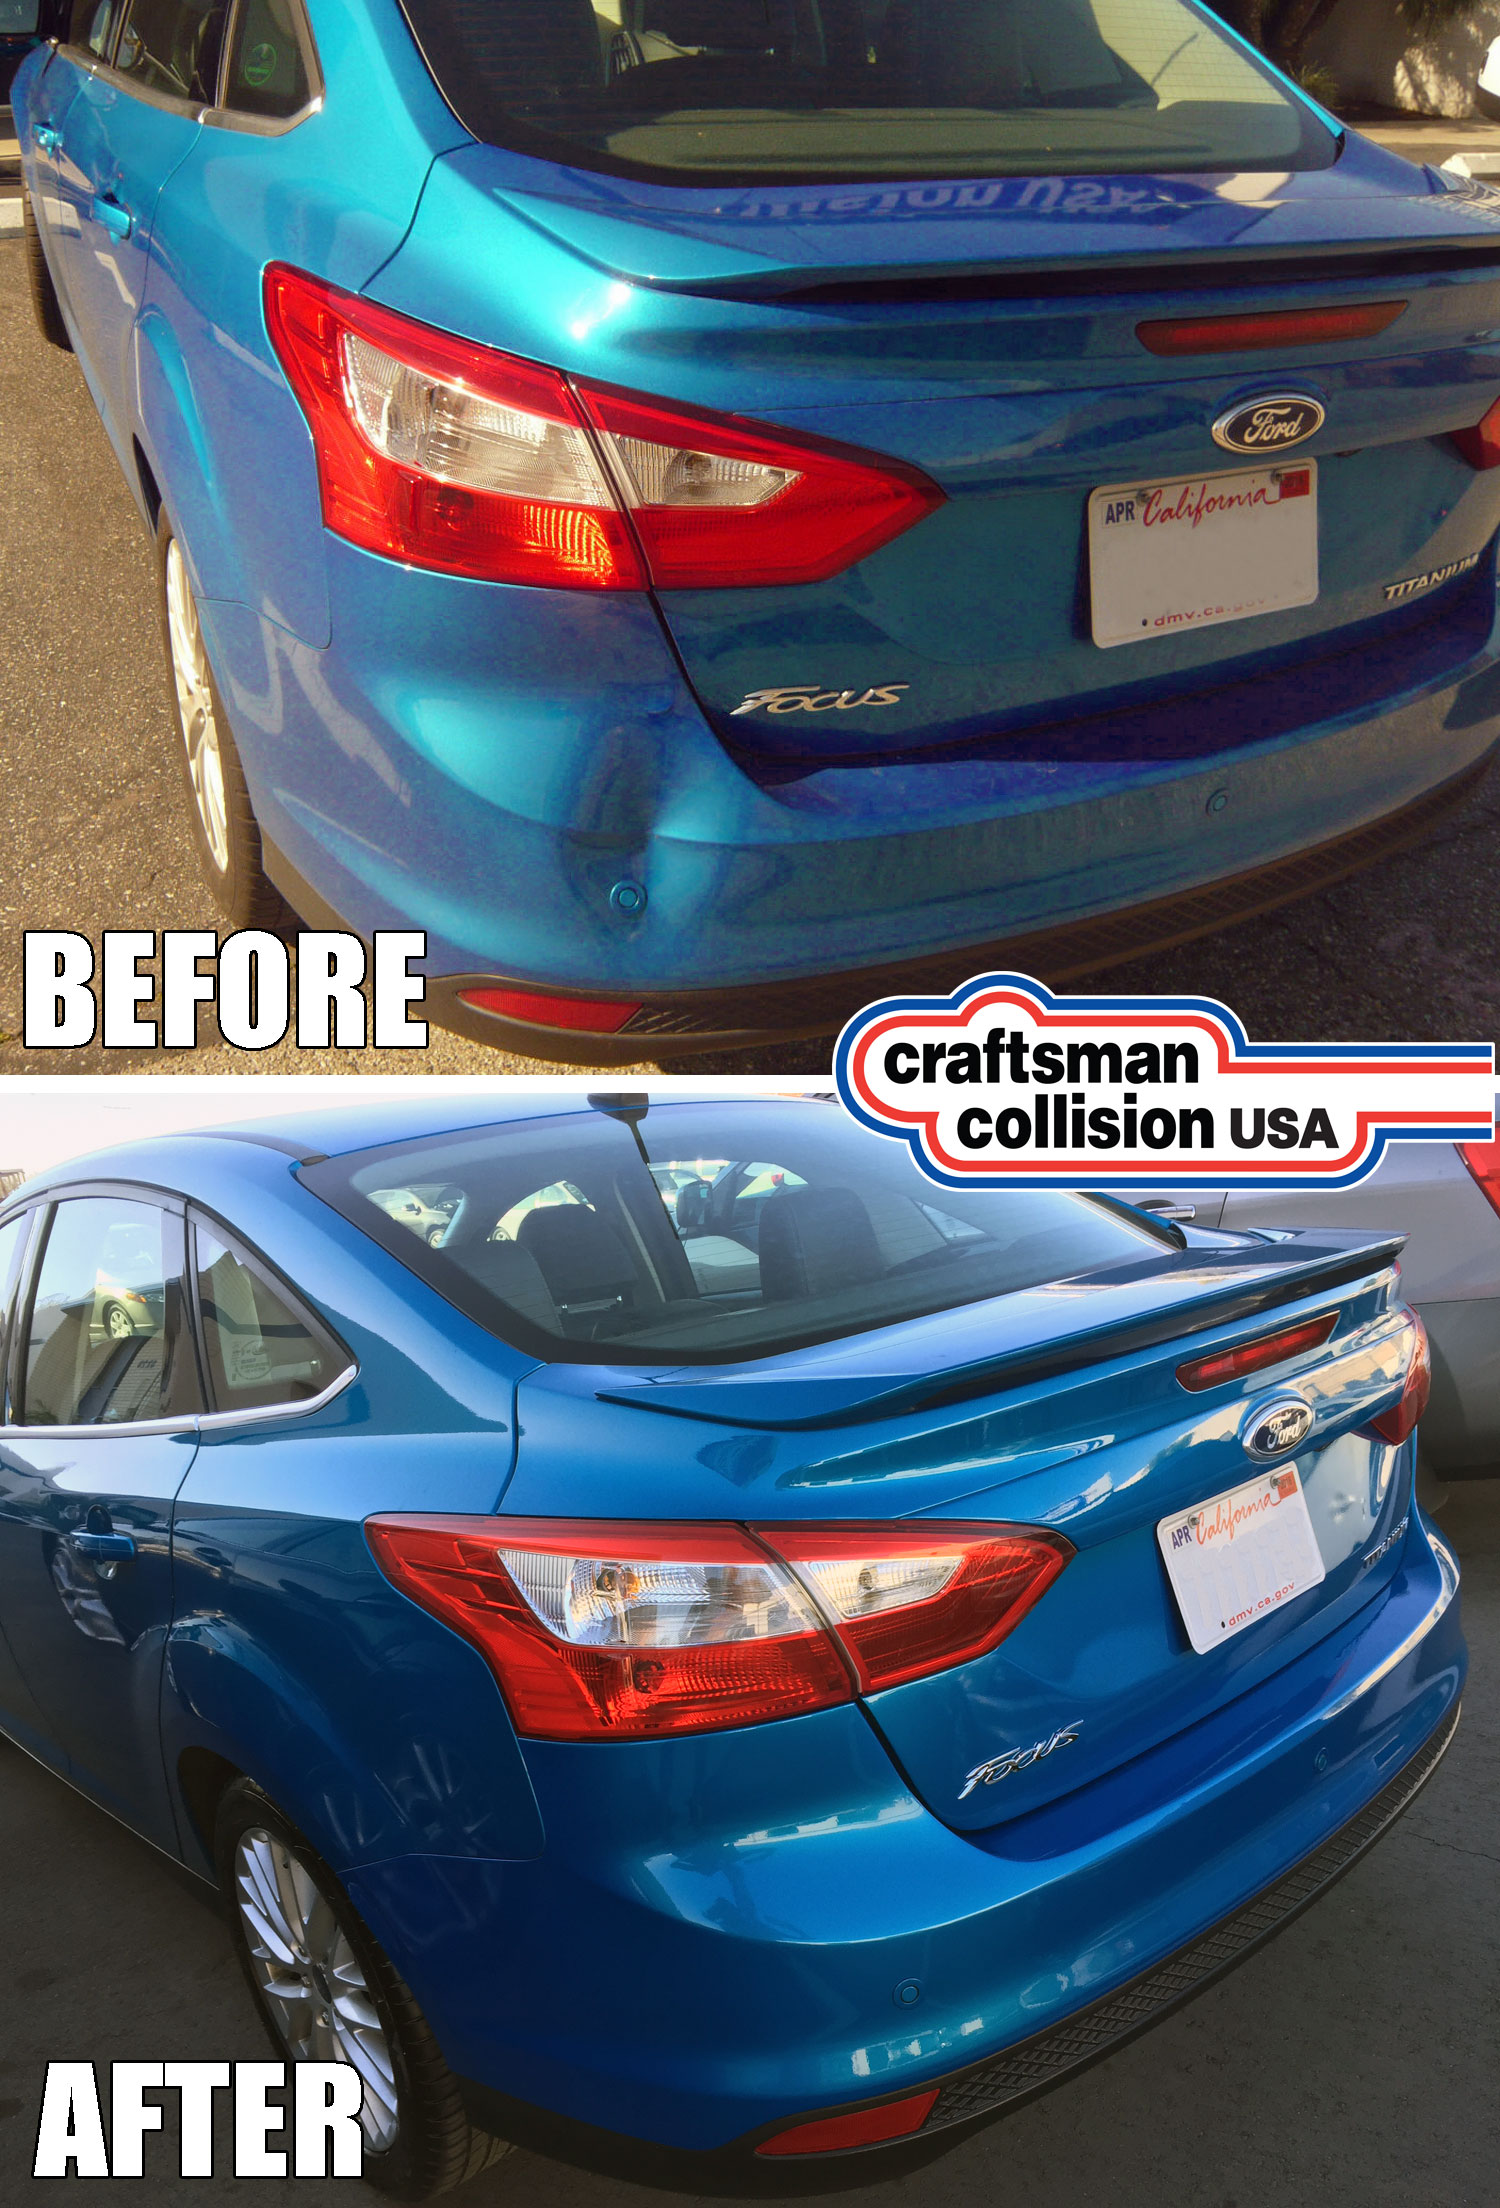 Ford focus bumper repair.